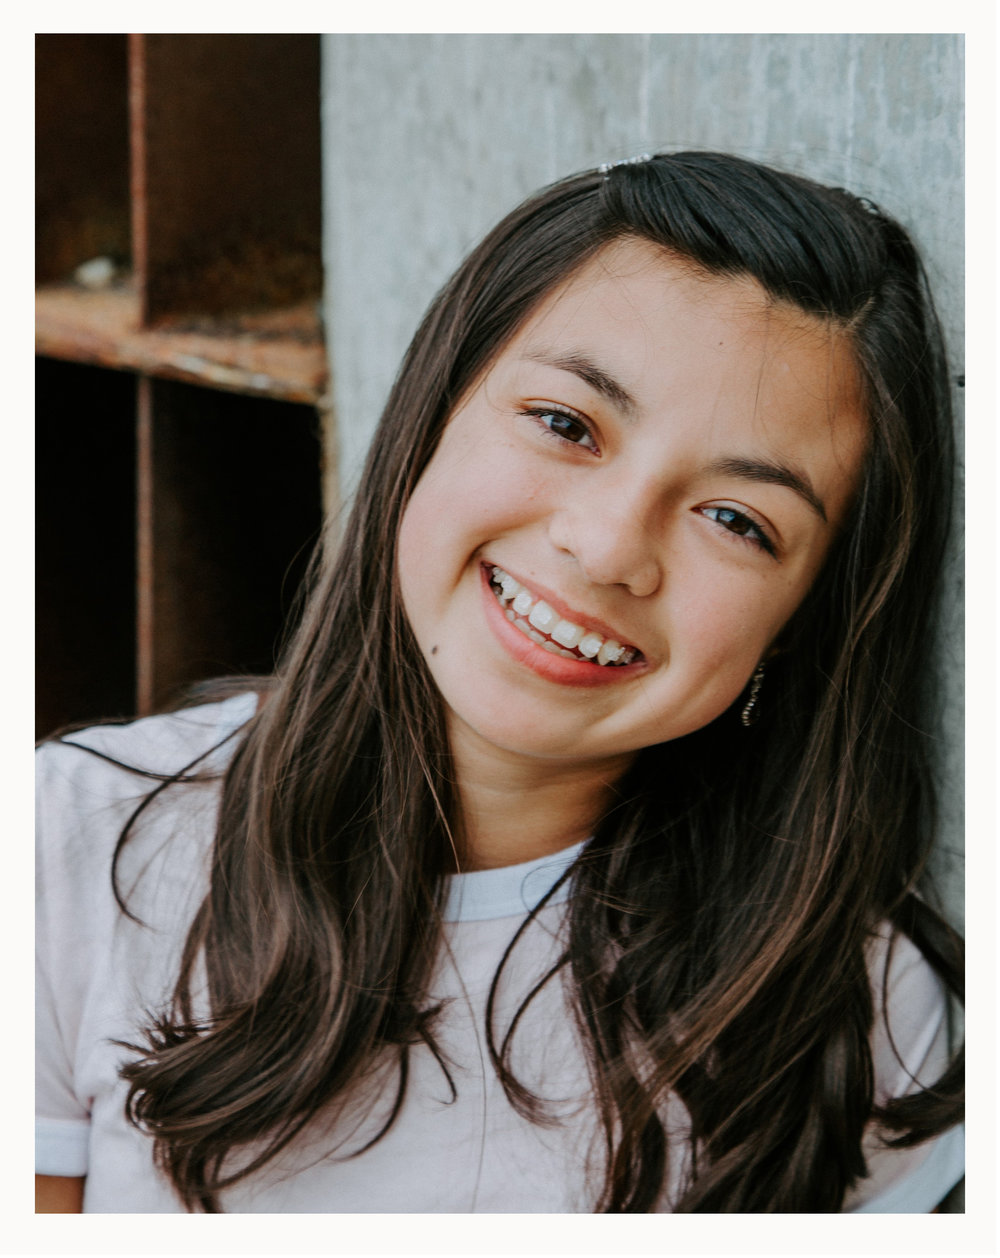 "Kiana Estes - Kiana Estes, 14 years is elated to be cast in the reading of a novel written by a very inspiring professional playwright, Lauren Fulton. Kiana developed her passion for theatre at age 9 along with her best friend/sister Kalia and baby brother, Keagan. A few of her favorite parts she played were ""Annie""(Annie Jr./EDGE), ""Flounder"" (Little Mermaid Jr./NCA) ""Ngana"" (South Pacific/SMT), and ""Zaneeta"" (Music Man Jr./NCA). Kiana has been in TV commercials, film and print ads. The training that she gets from her directors has definitely been helping to hone her skills. She is forever grateful to her parents who have been so supportive and have shown them what love truly means. She thanks God for the blessing of family and friends."